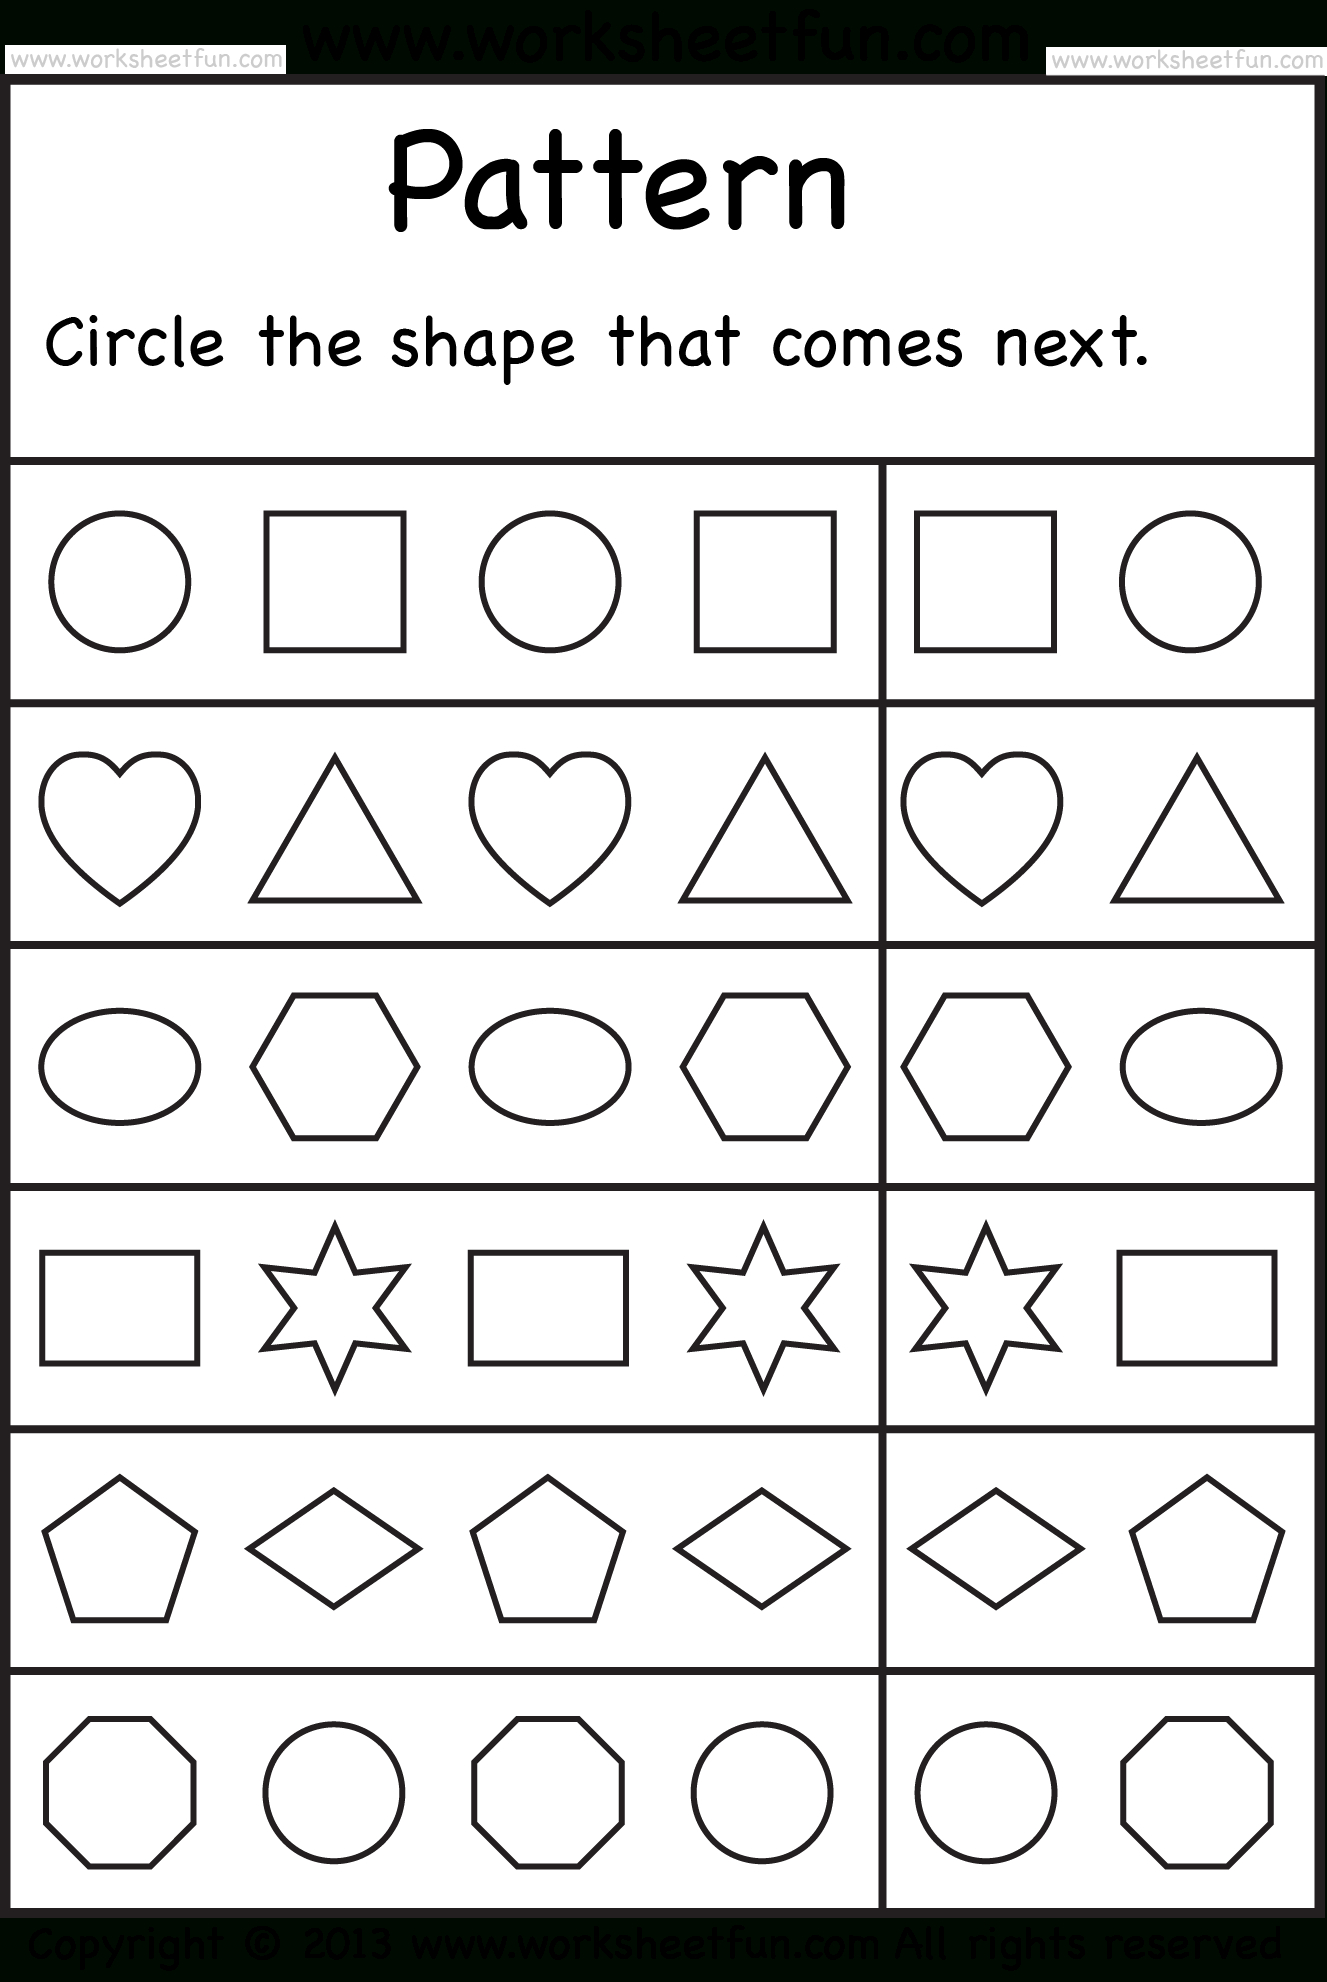 Free Printable Worksheets – Worksheetfun / Free Printable | Printable School Worksheets